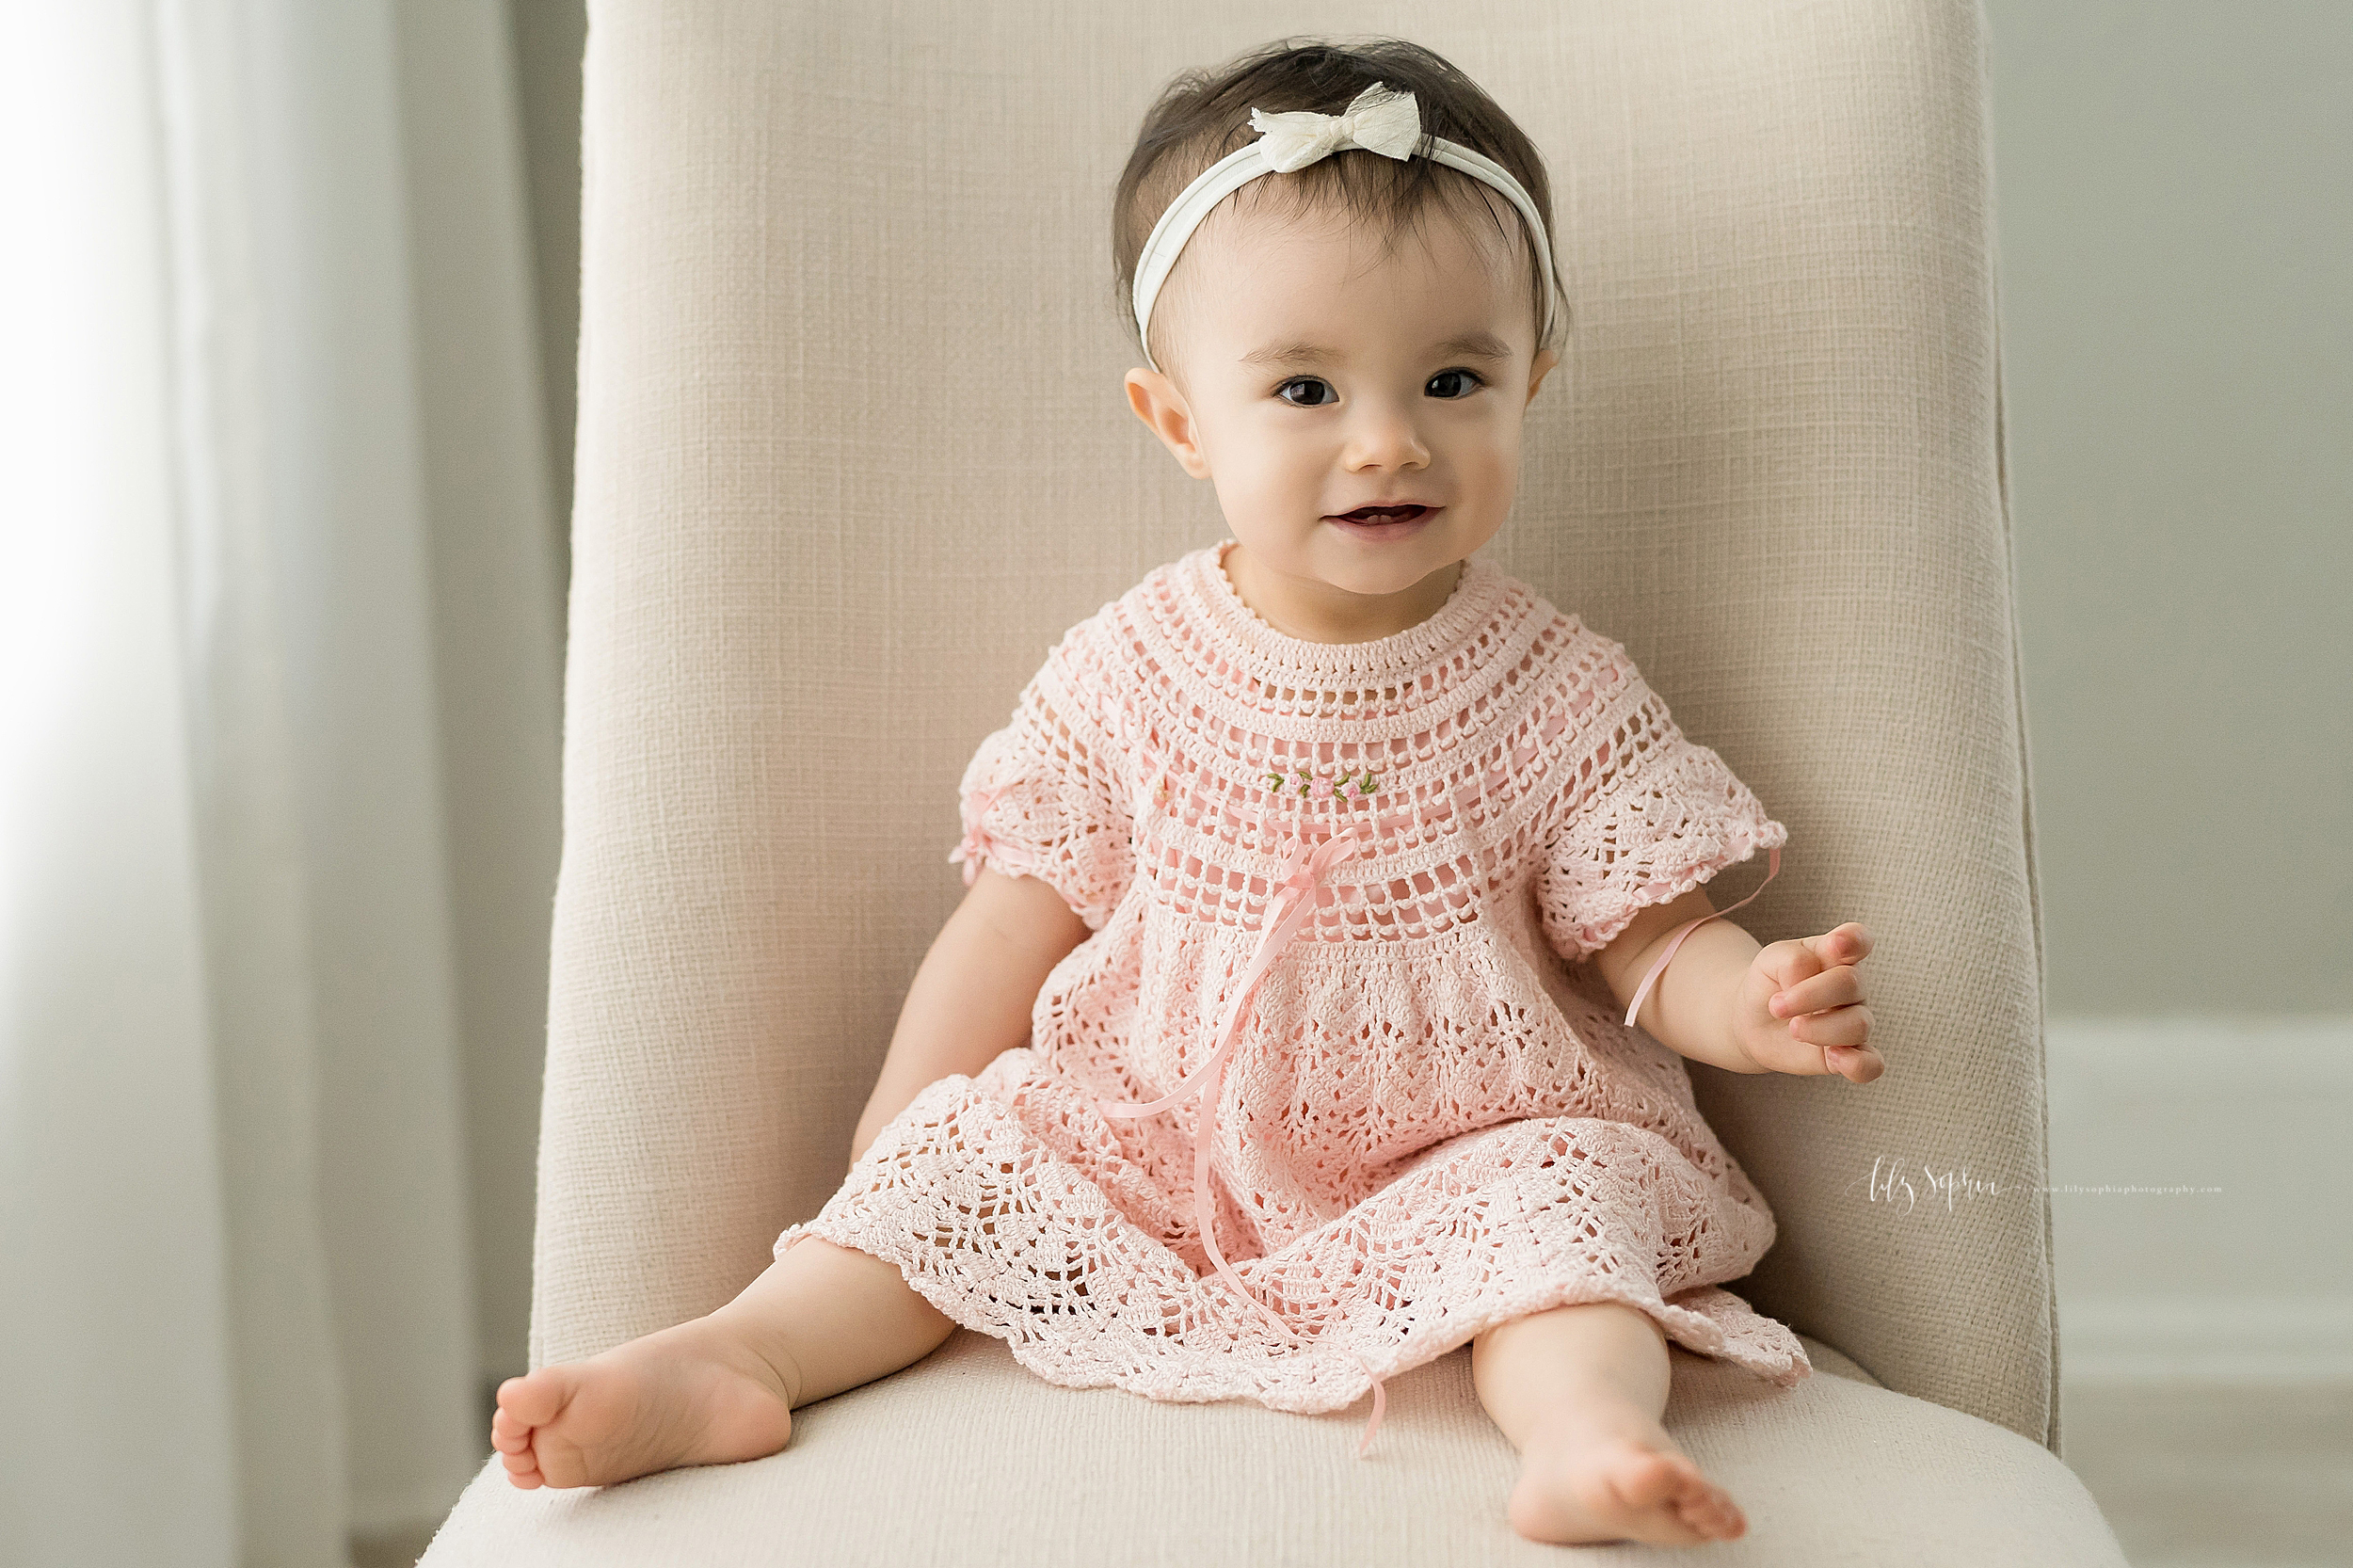 Photograph of an Asian one year old sitting on a cream linen armless chair in front of a window with sheer panel drapes. She is barefoot with her legs spread apart and is wearing a pastel pink crocheted dress with three delicate roses sewn on the front and a delicate pink ribbon bow.  The short sleeves have pink ribbon bows woven through the crocheted fabric at the bottom.  Her arm is bent at the elbow and she is gesturing with her left hand.  Her right arm is at her side.